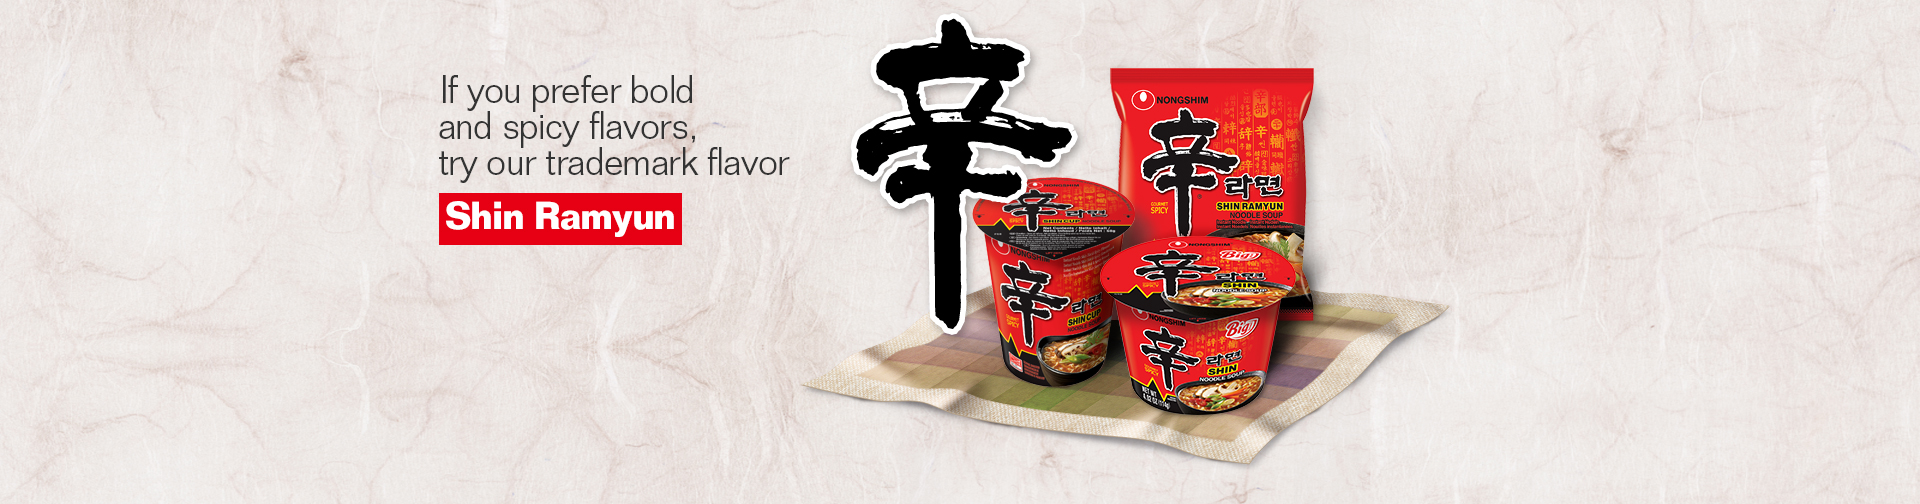 If you prefer bold and spicy flavors, try our trademark flavor